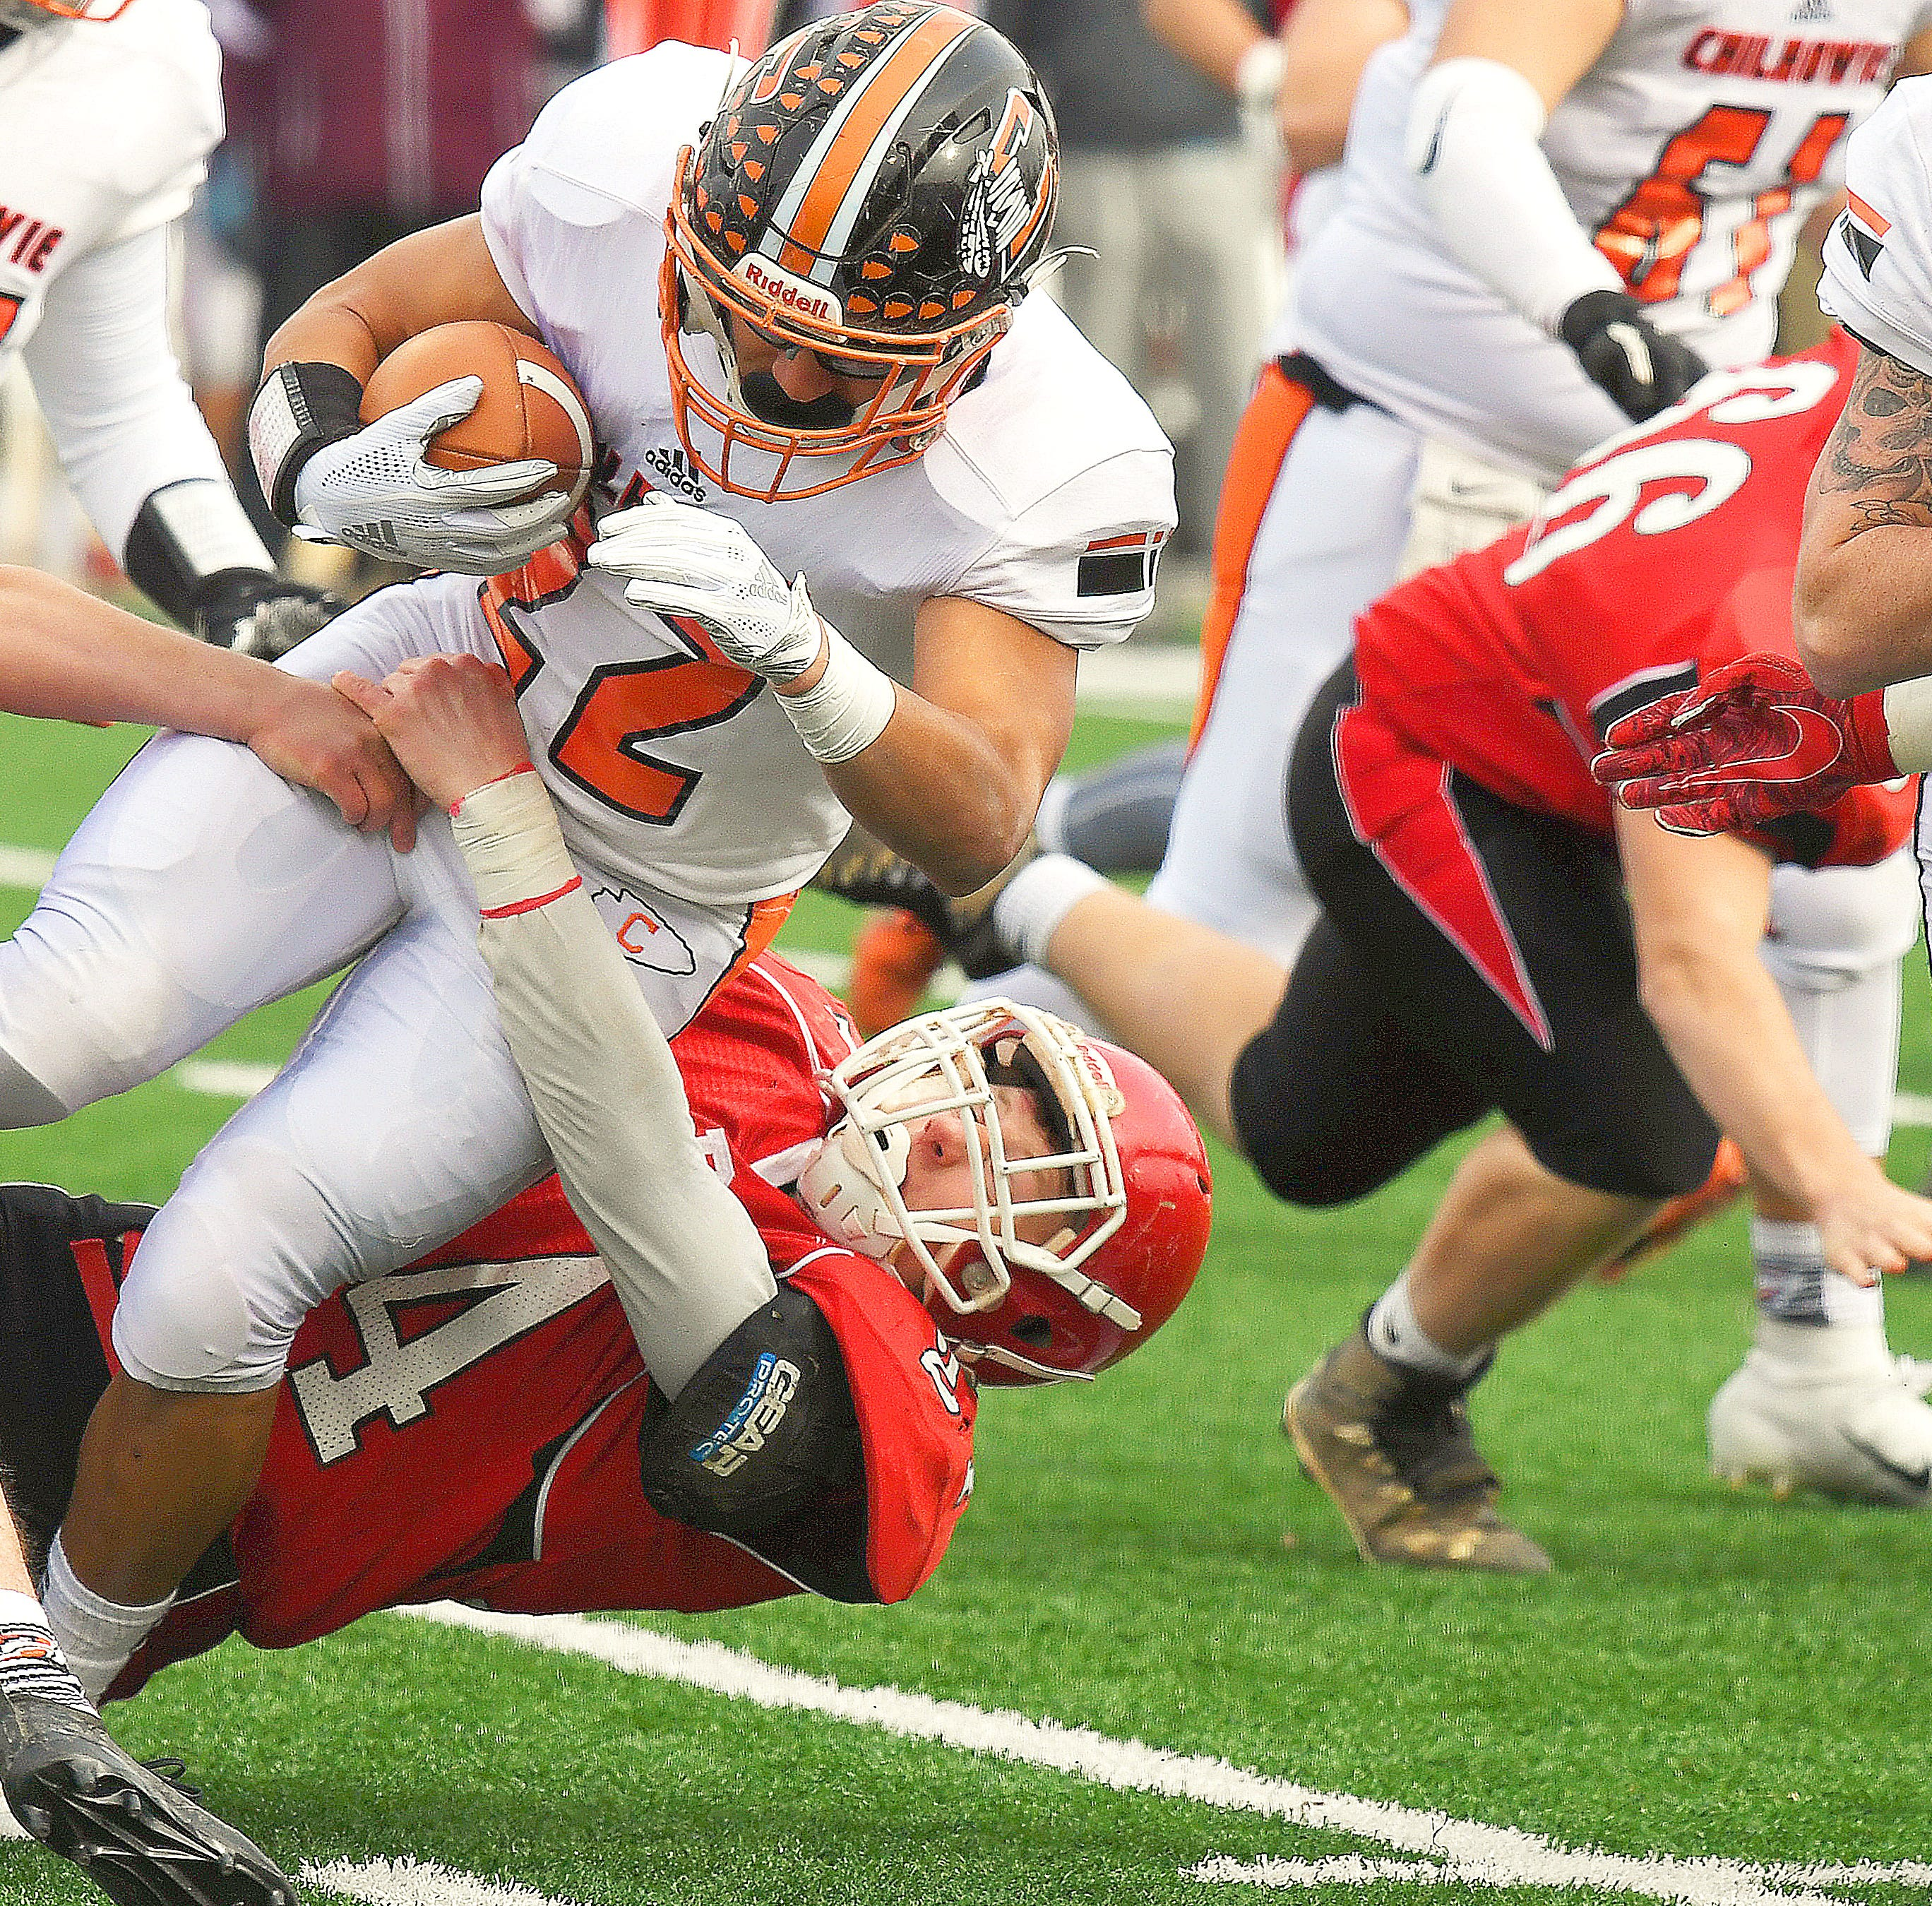 Perfect harmony: Defense leads Riverheads' hit parade in title game